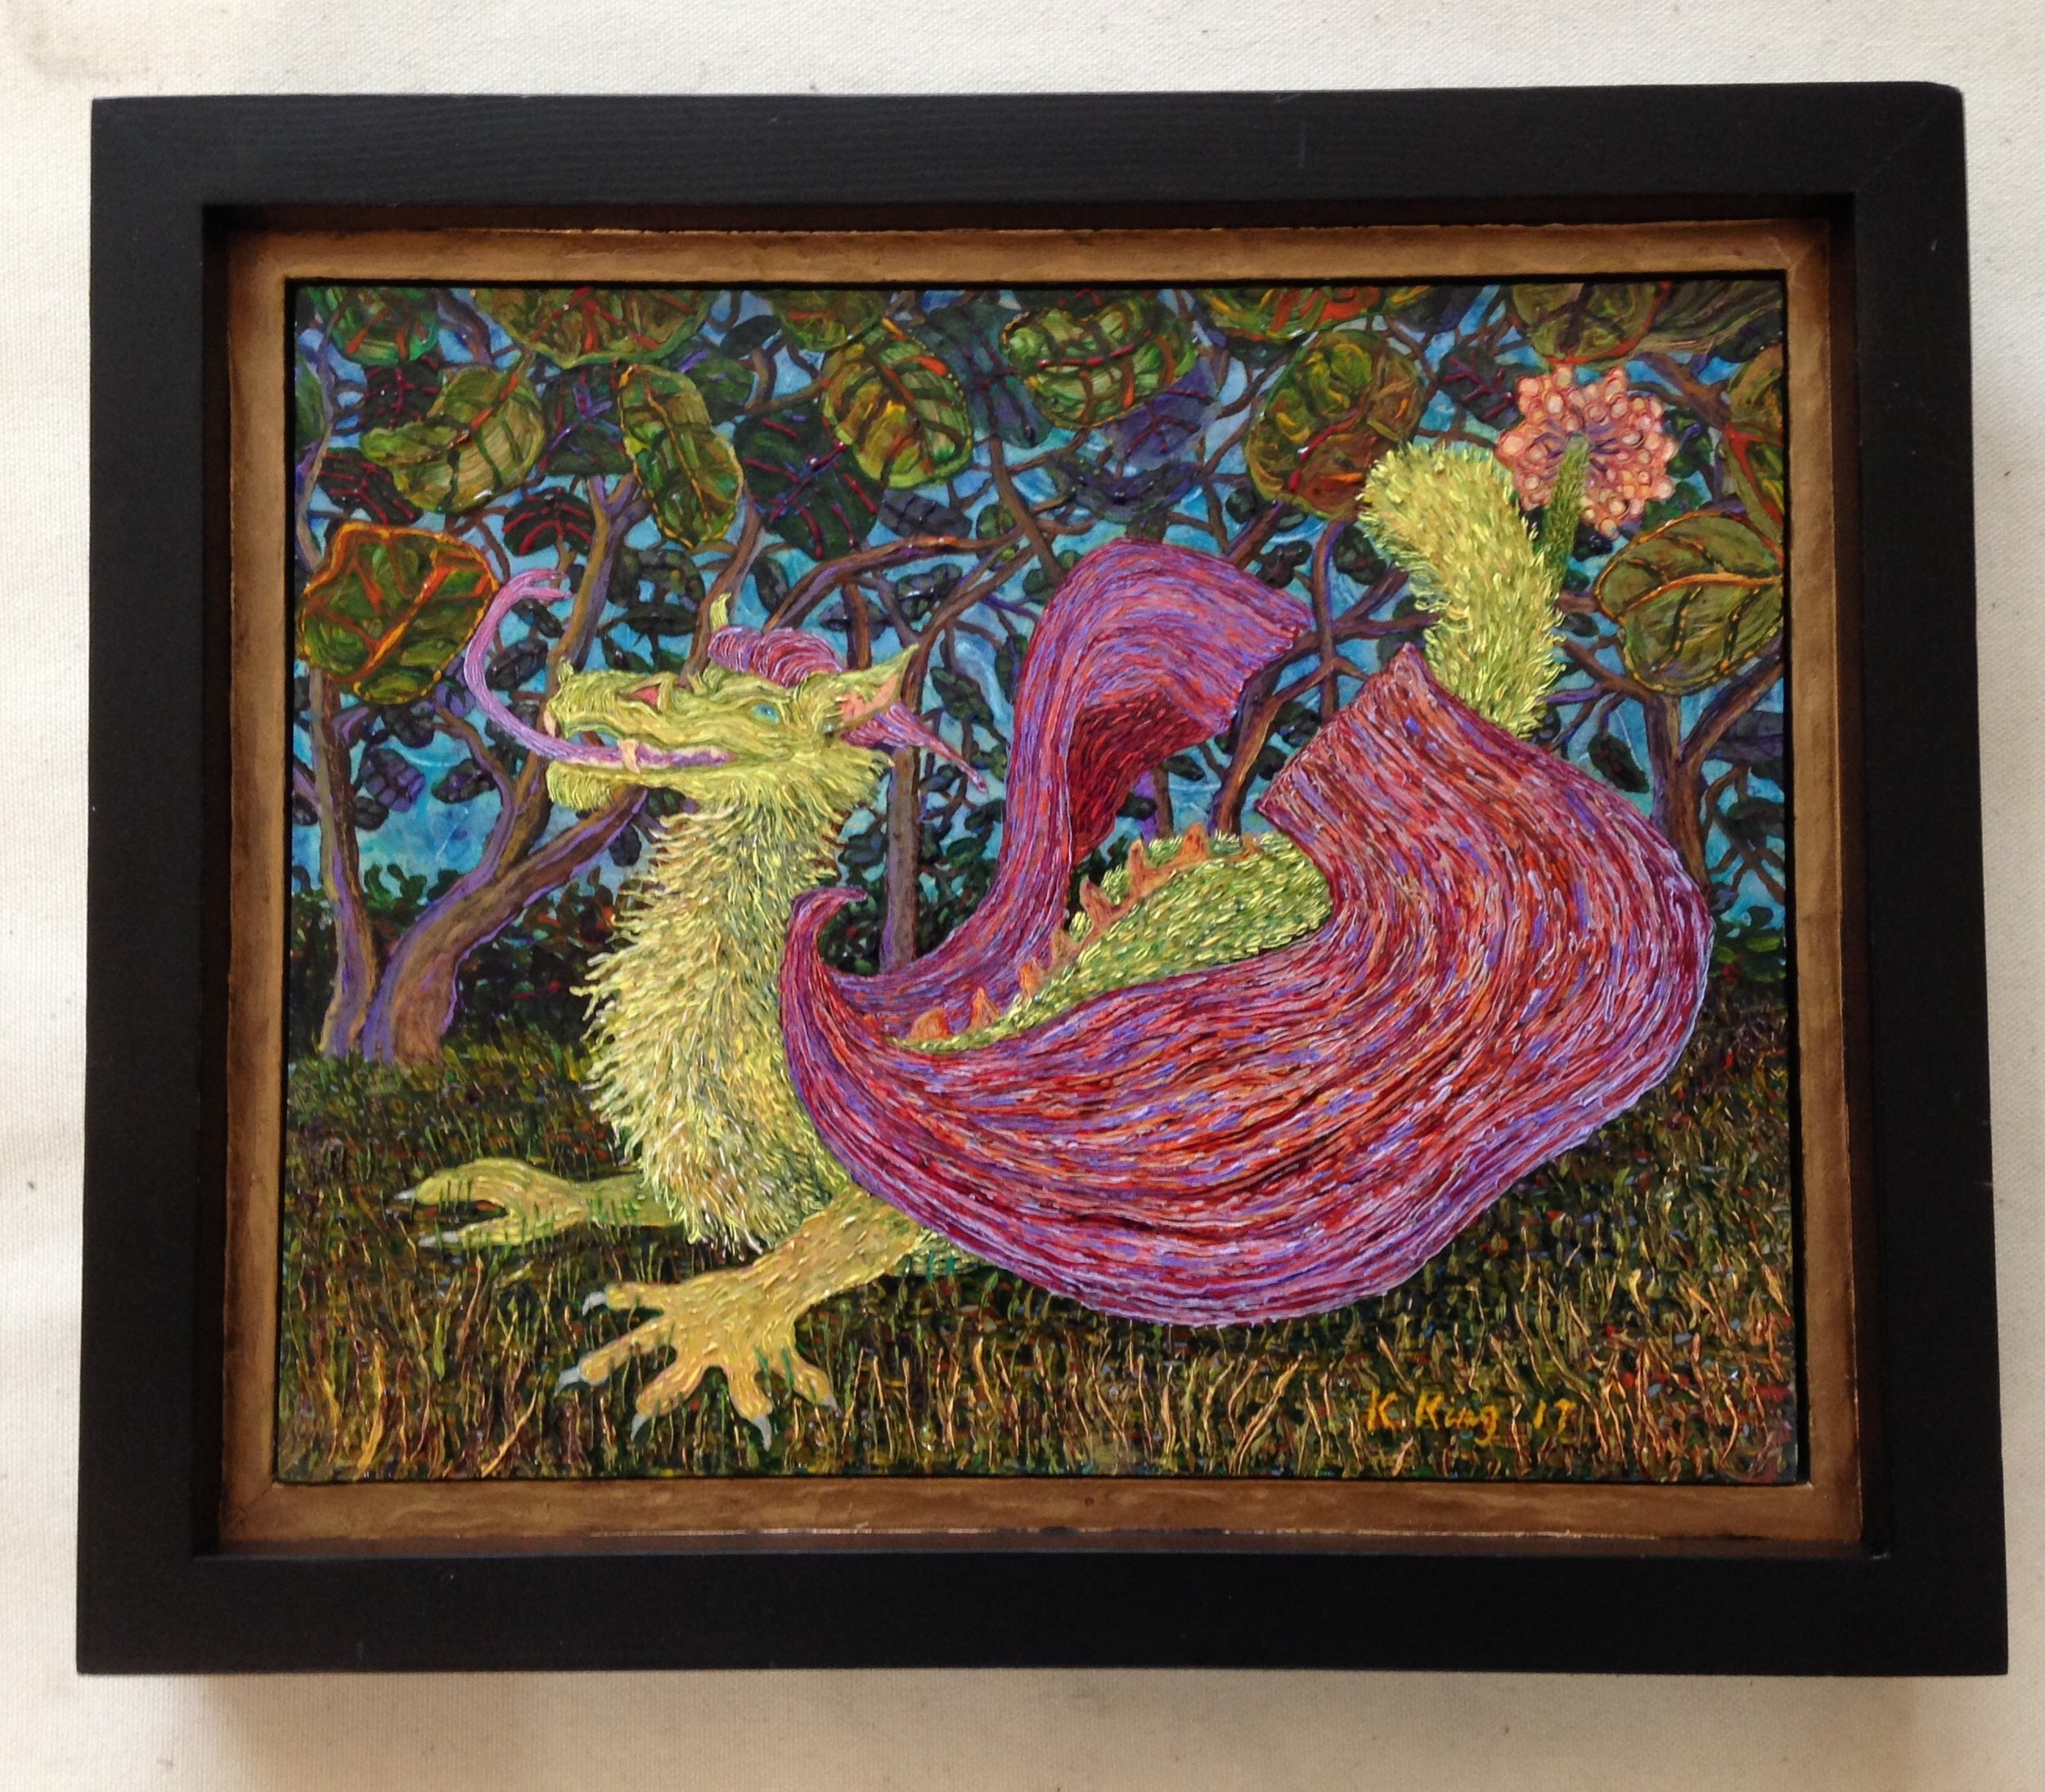 "'Little Grinning Dragon"" By Kathleen King: Oil over Acrylic on Board, 10.5"" x 12.25"" x 1.75"" (includes outer frame)"